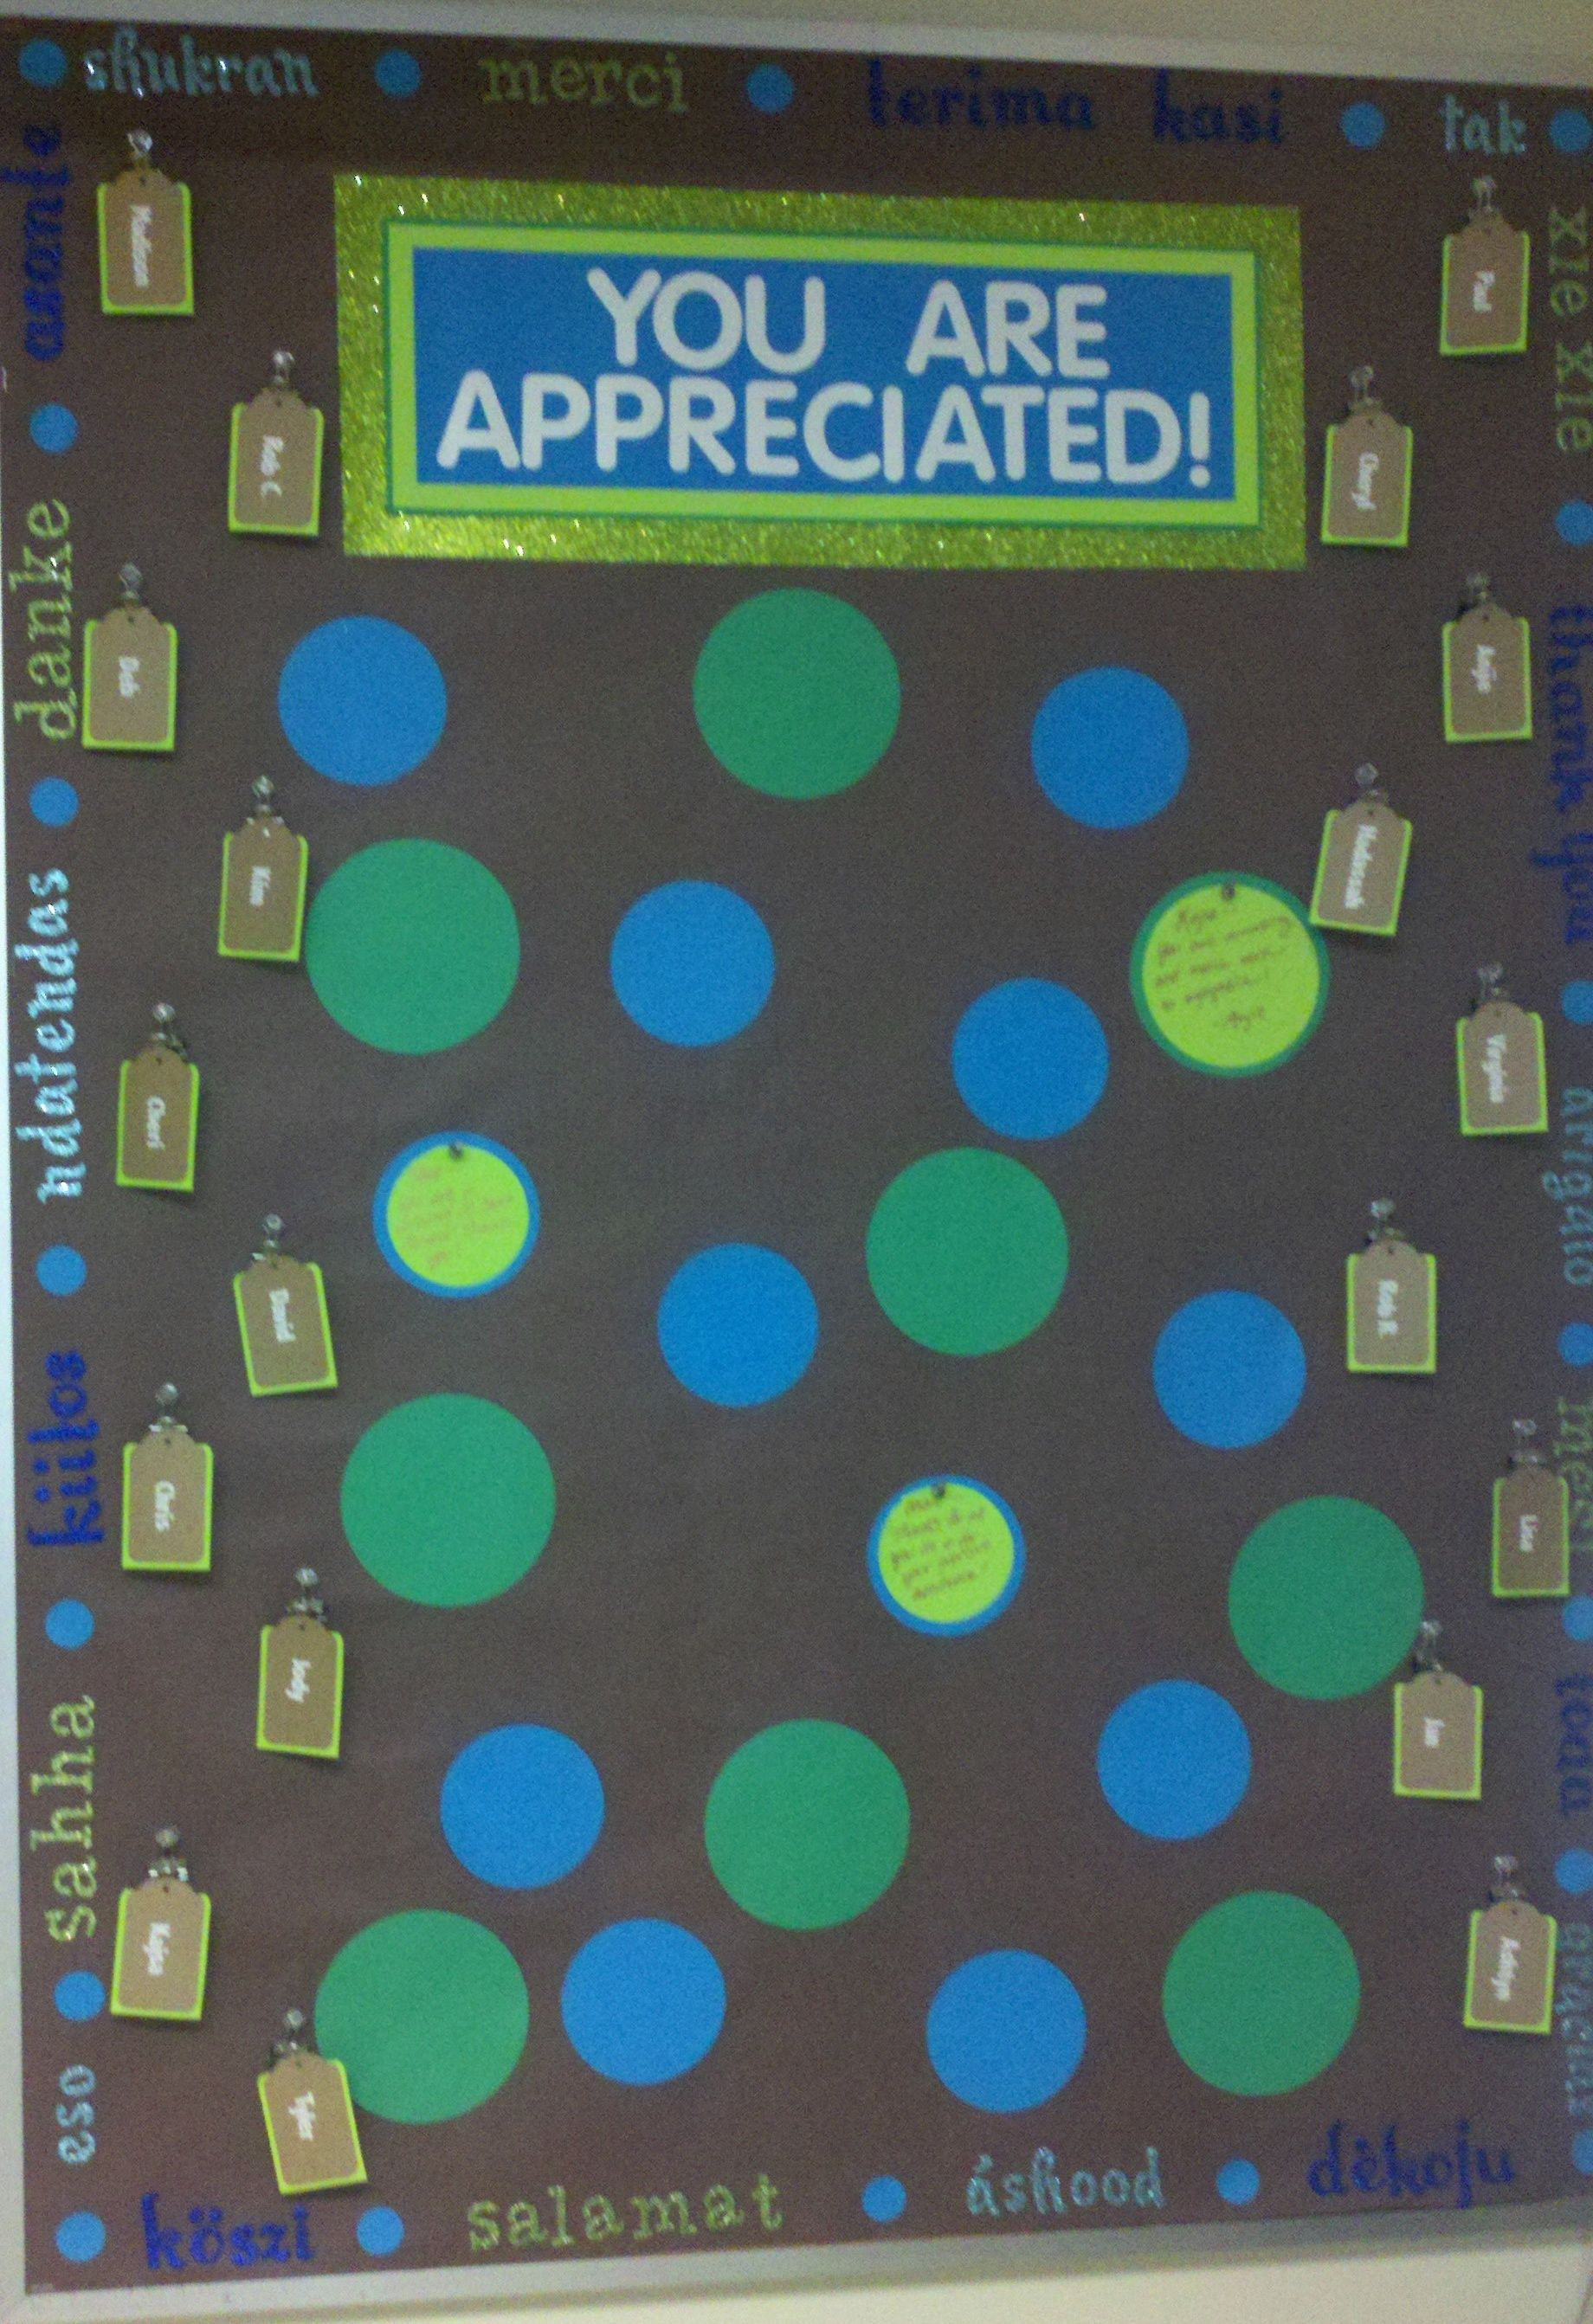 Employee Appreciation Board! Around the edges are \